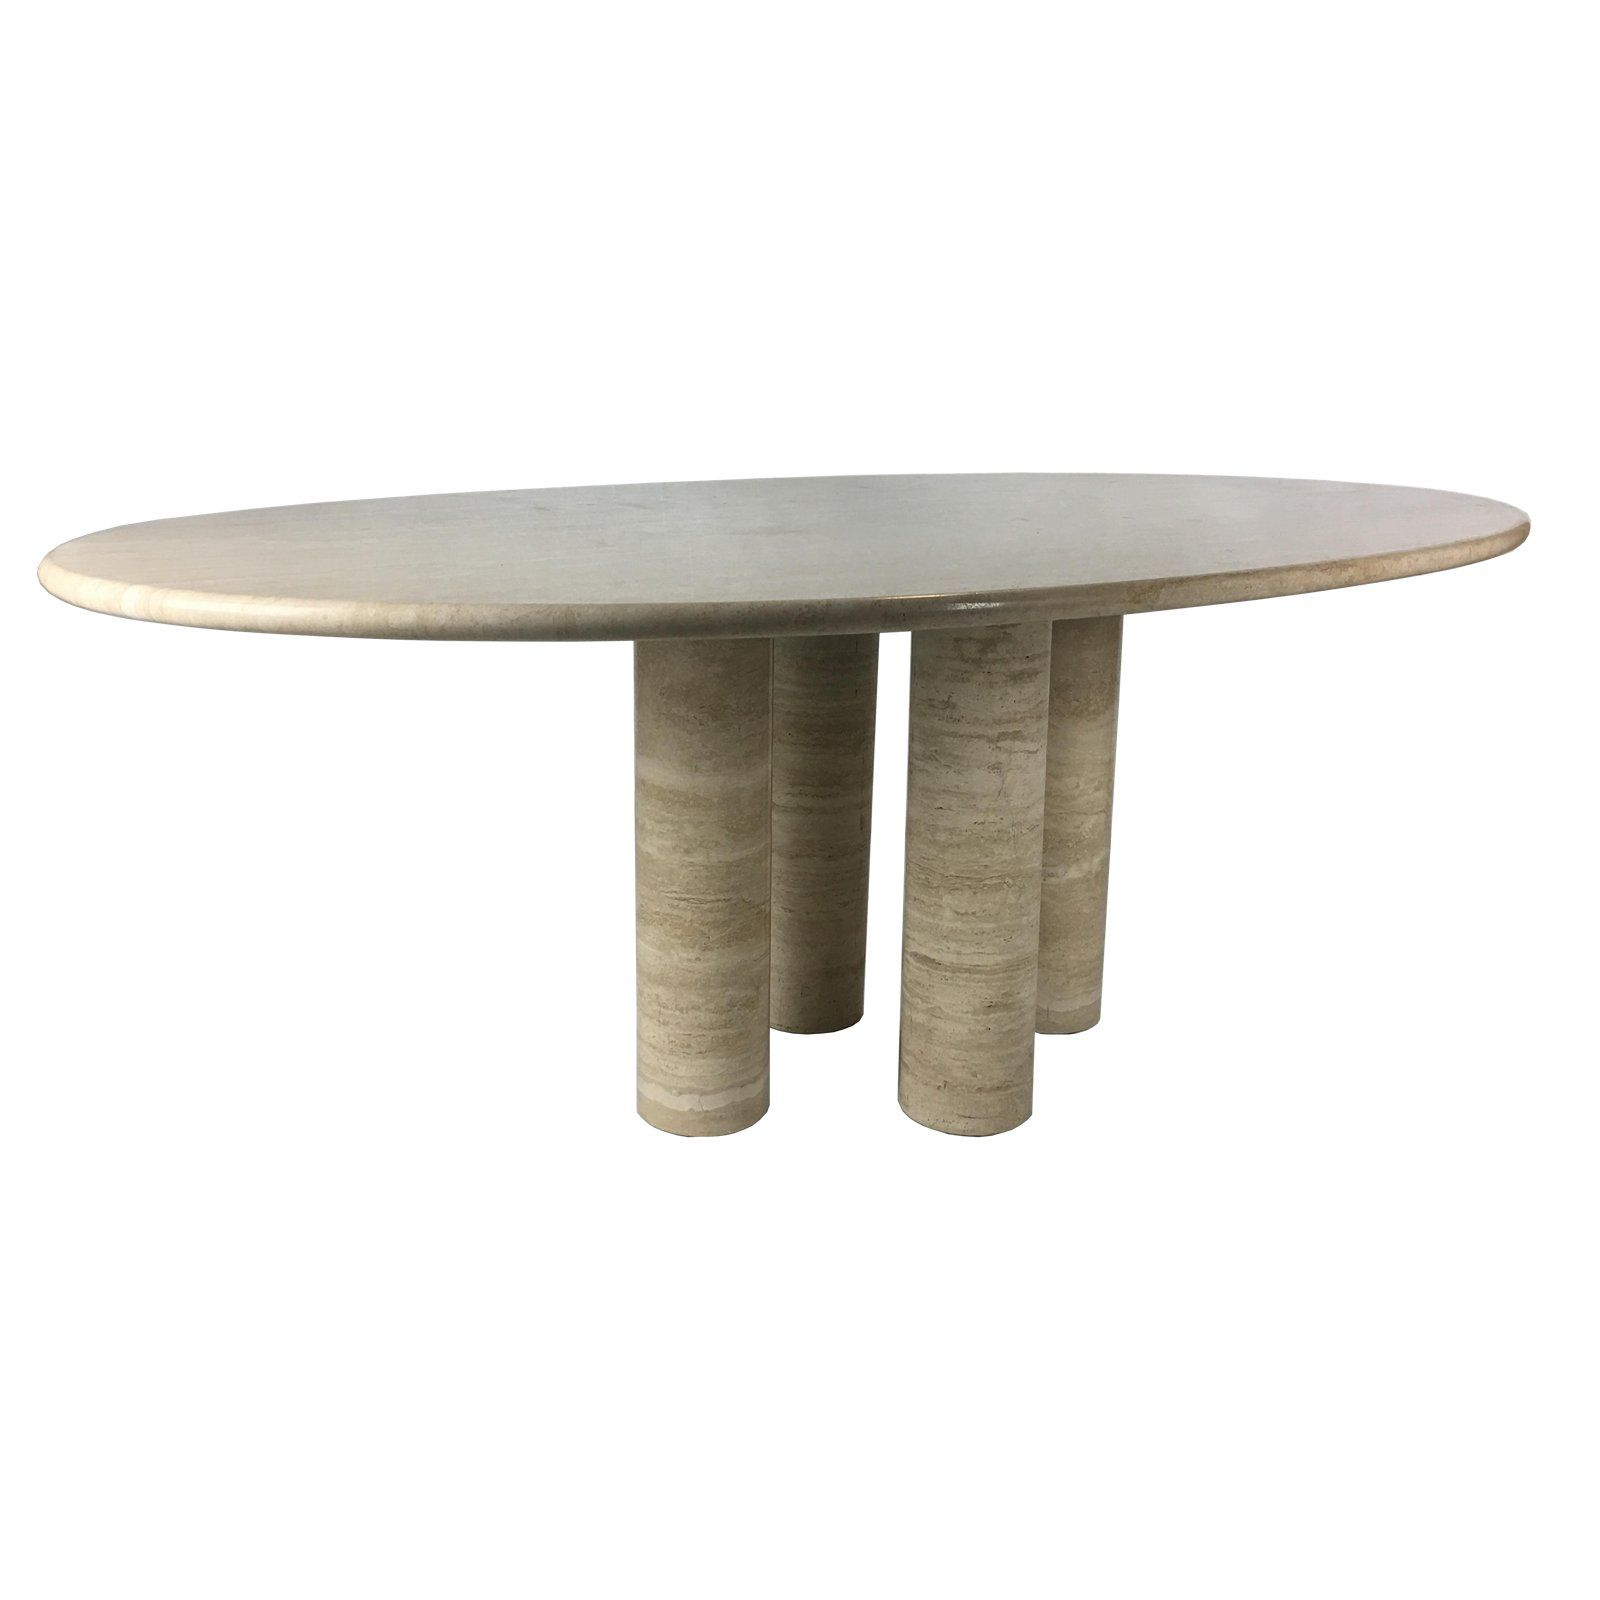 Distinguished Il Colonnato Travertino Romano Dining Table By Mario